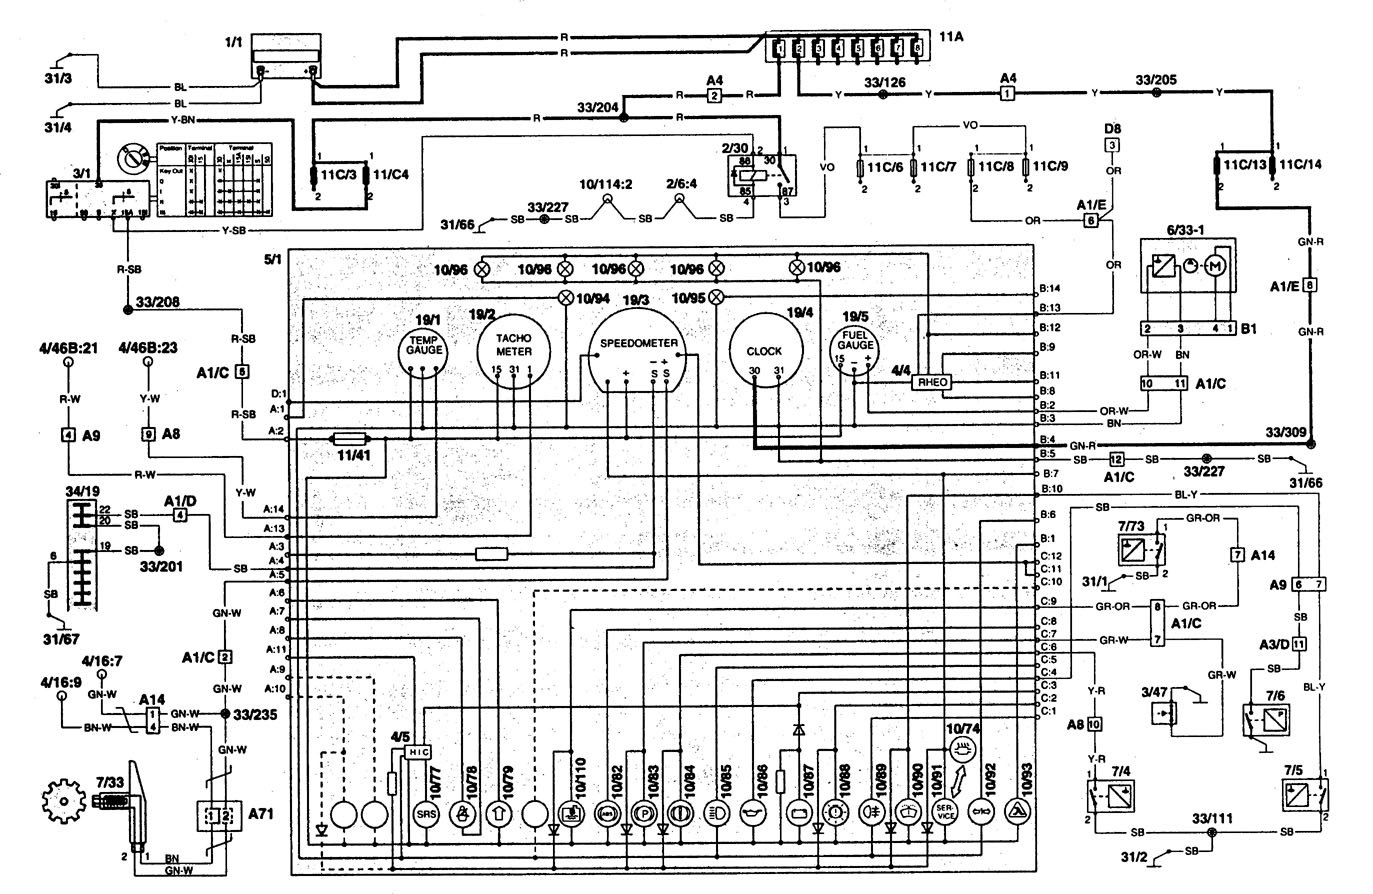 DIAGRAM] 1995 Volvo 960 Wiring Diagram FULL Version HD Quality Wiring  Diagram - HPVDIAGRAMS.SCICLUBLADINIA.IT | Volvo 960 Wiring Diagram 1995 |  | Diagram Database